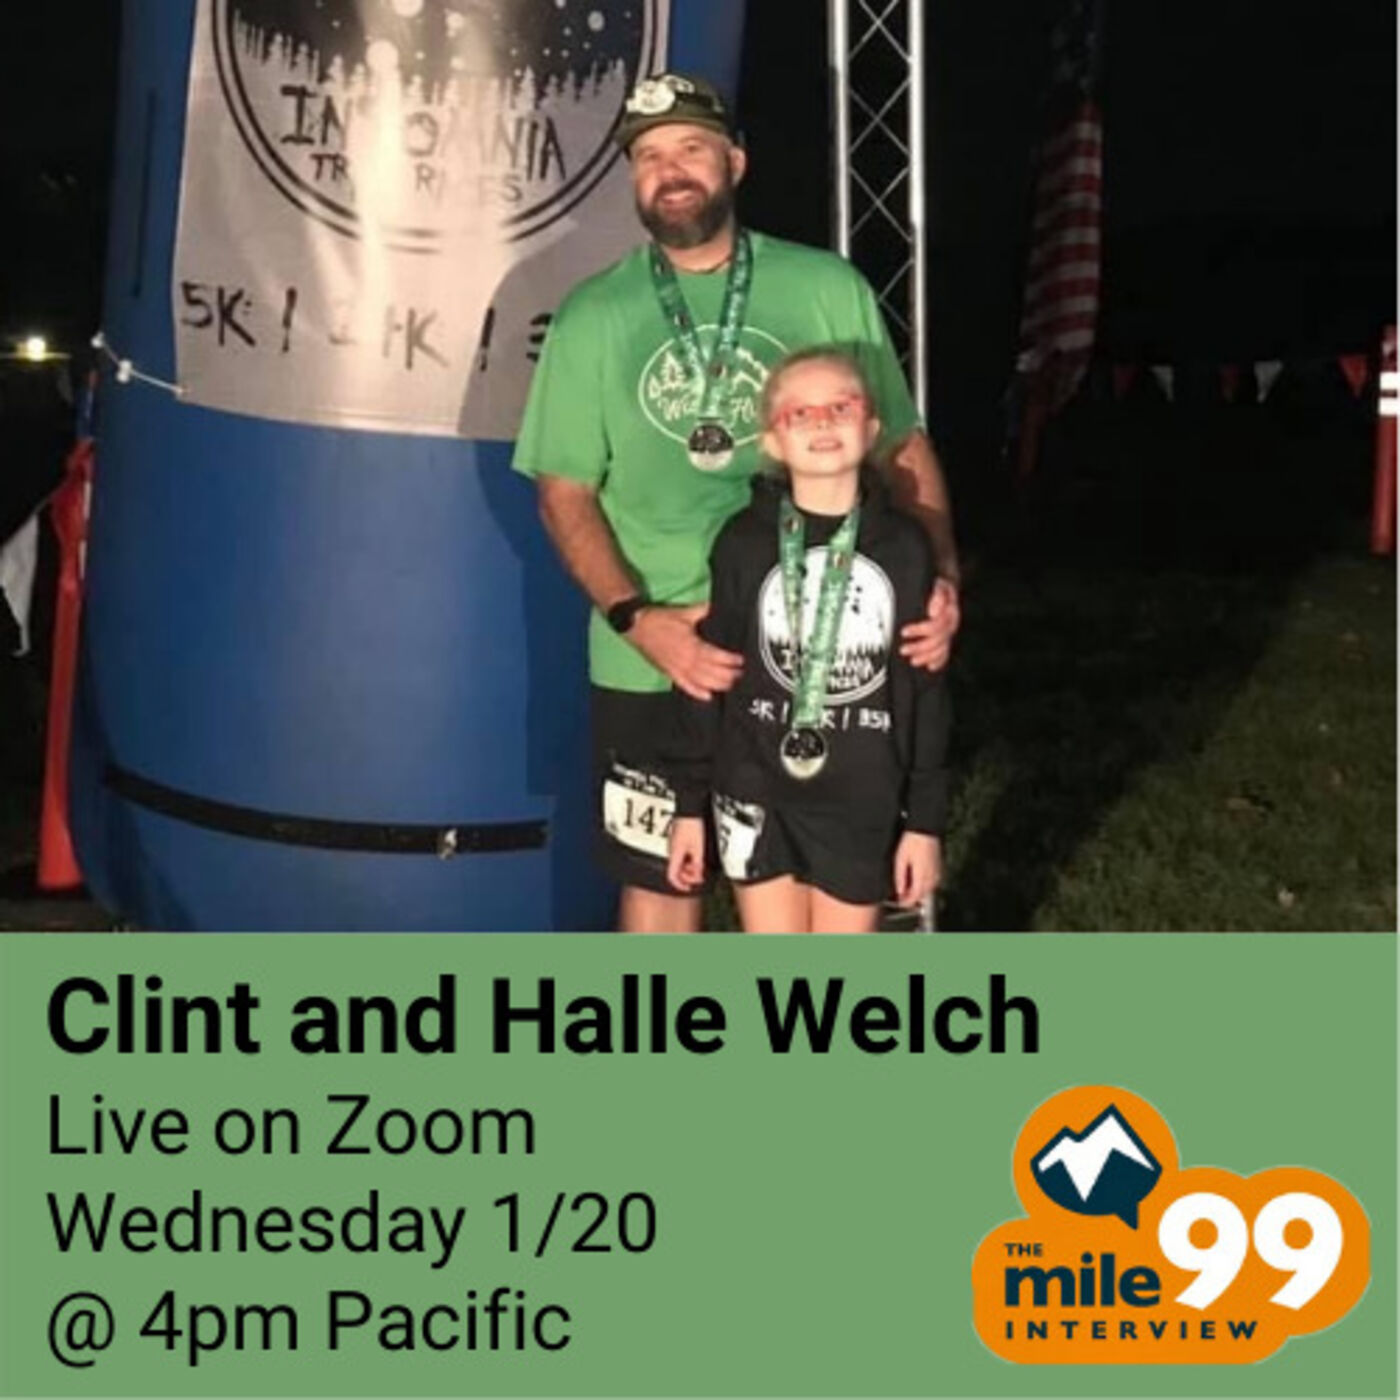 Episode 26 - Clint and Halle Welch